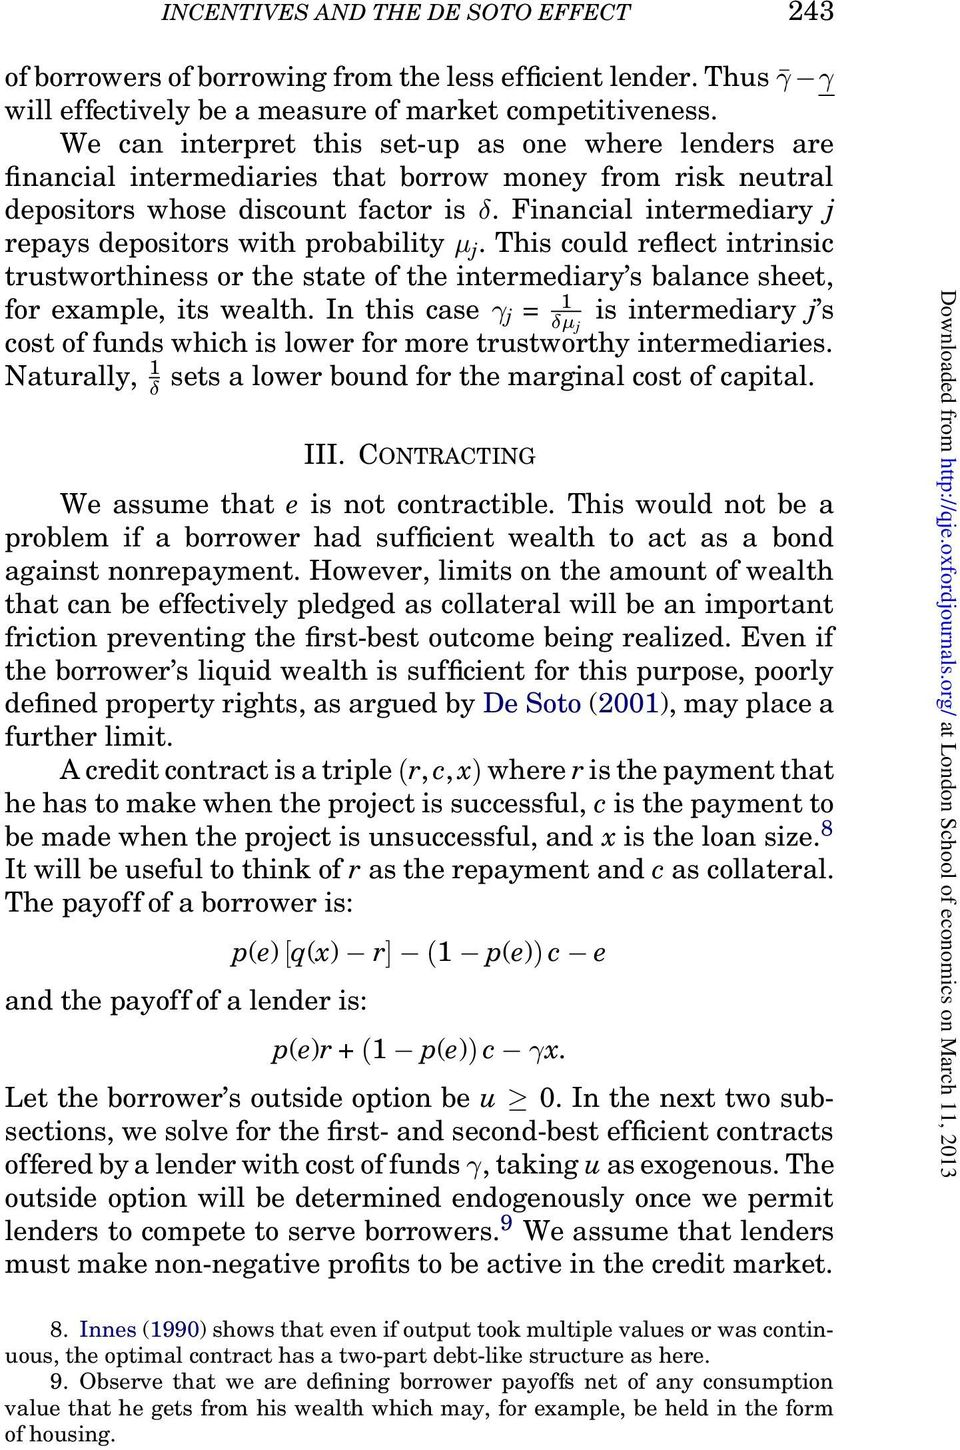 Financial intermediary j repays depositors with probability μ j. This could reflect intrinsic trustworthiness or the state of the intermediary s balance sheet, for example, its wealth.